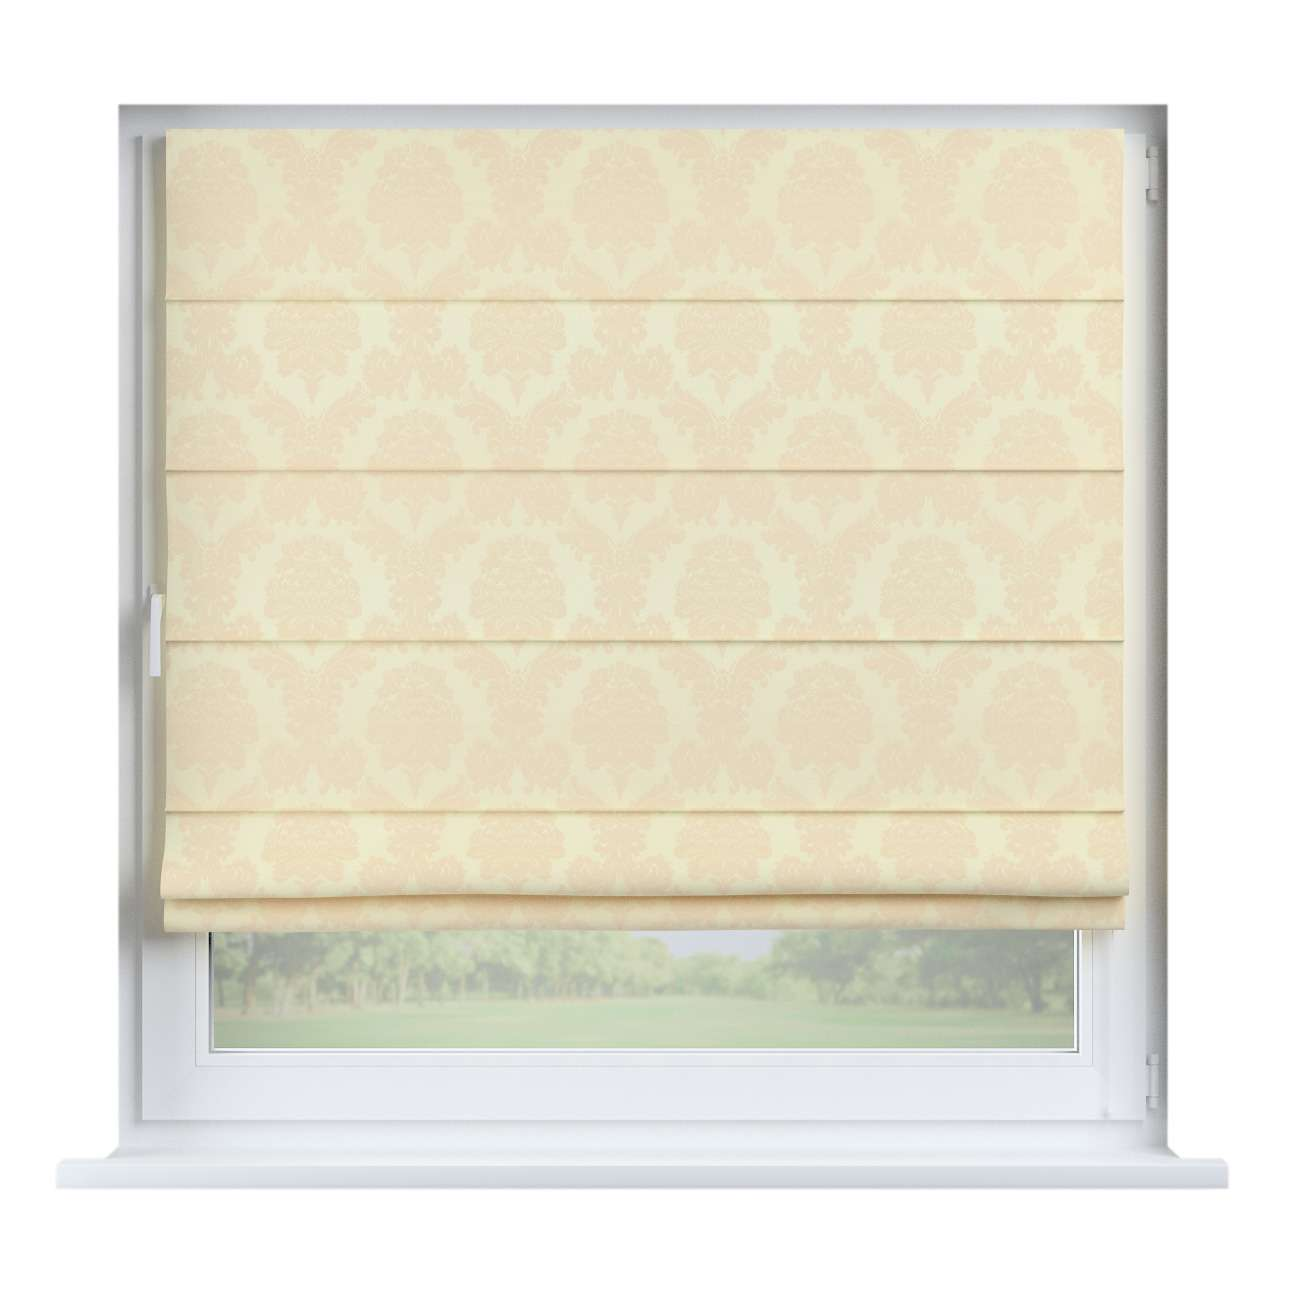 Capri roman blind 80 x 170 cm (31.5 x 67 inch) in collection Damasco, fabric: 613-01